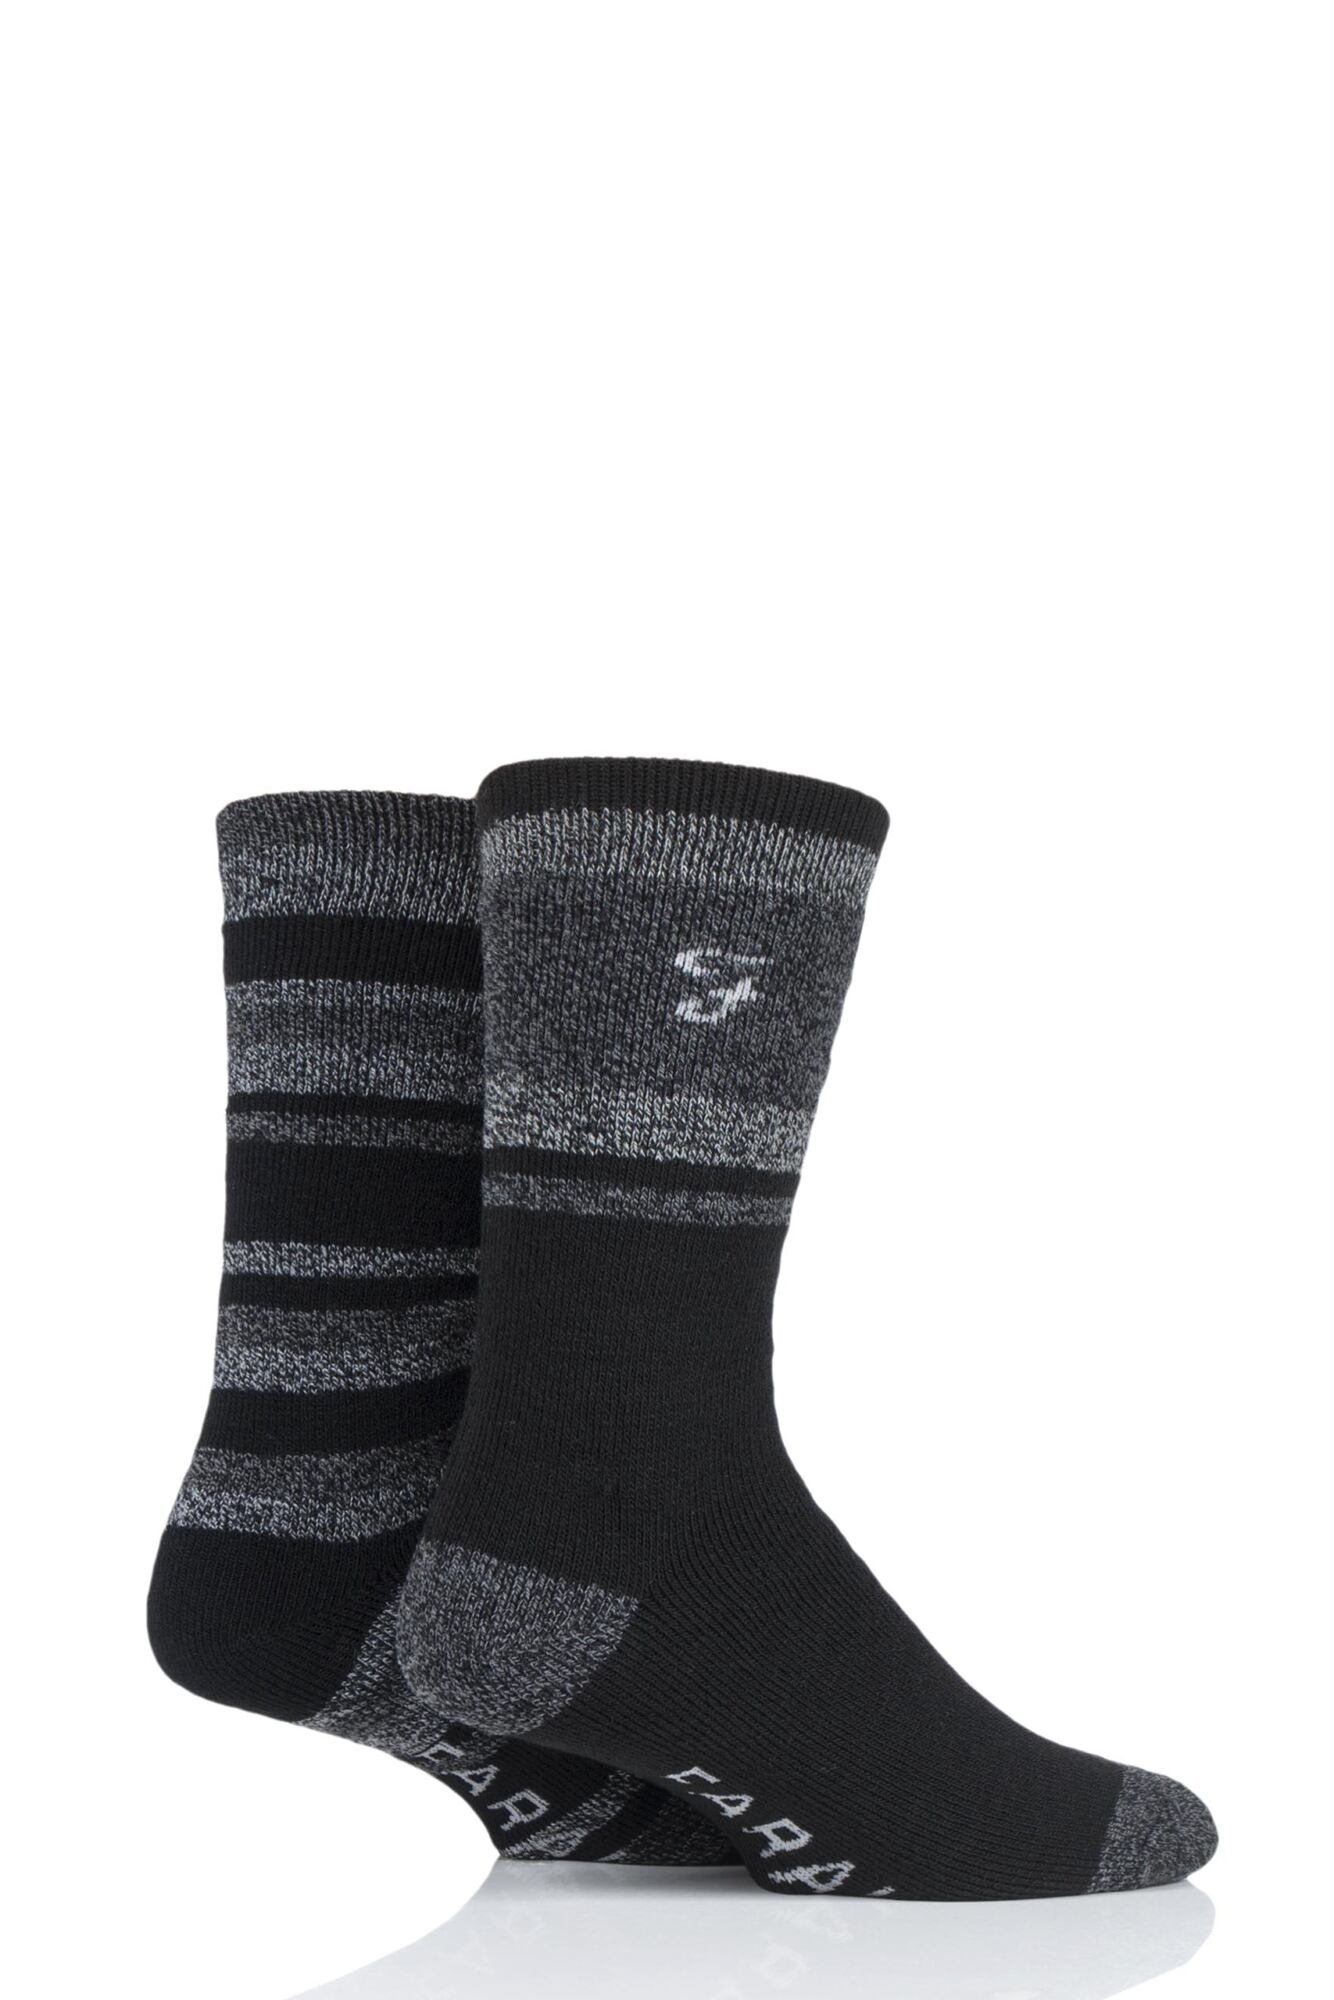 2 Pair Brushed Inner Boot Socks Men's - Farah